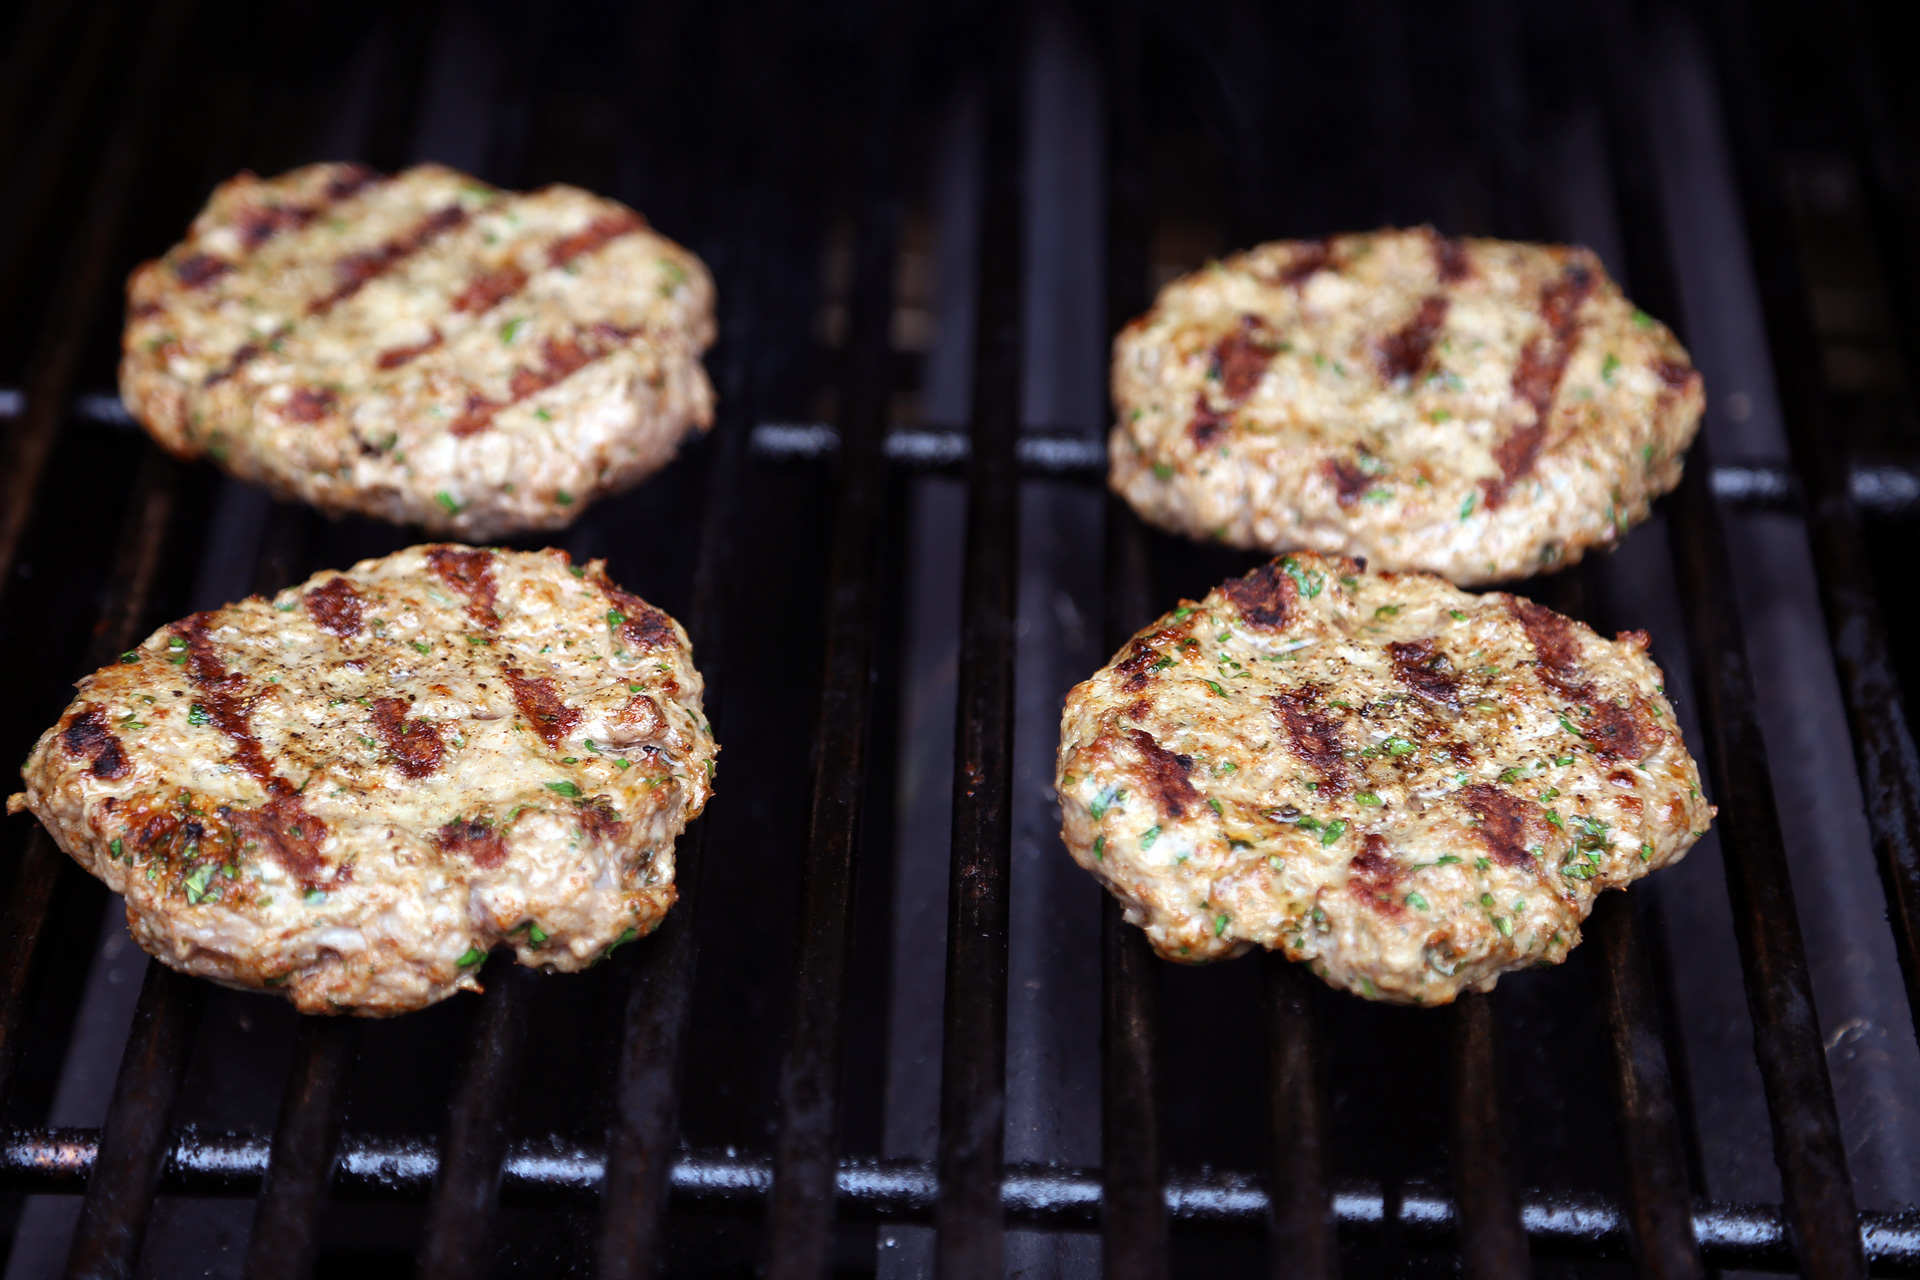 Grill the patties until nicely seared on both sides, turning occasionally, about 4 minutes on each side.